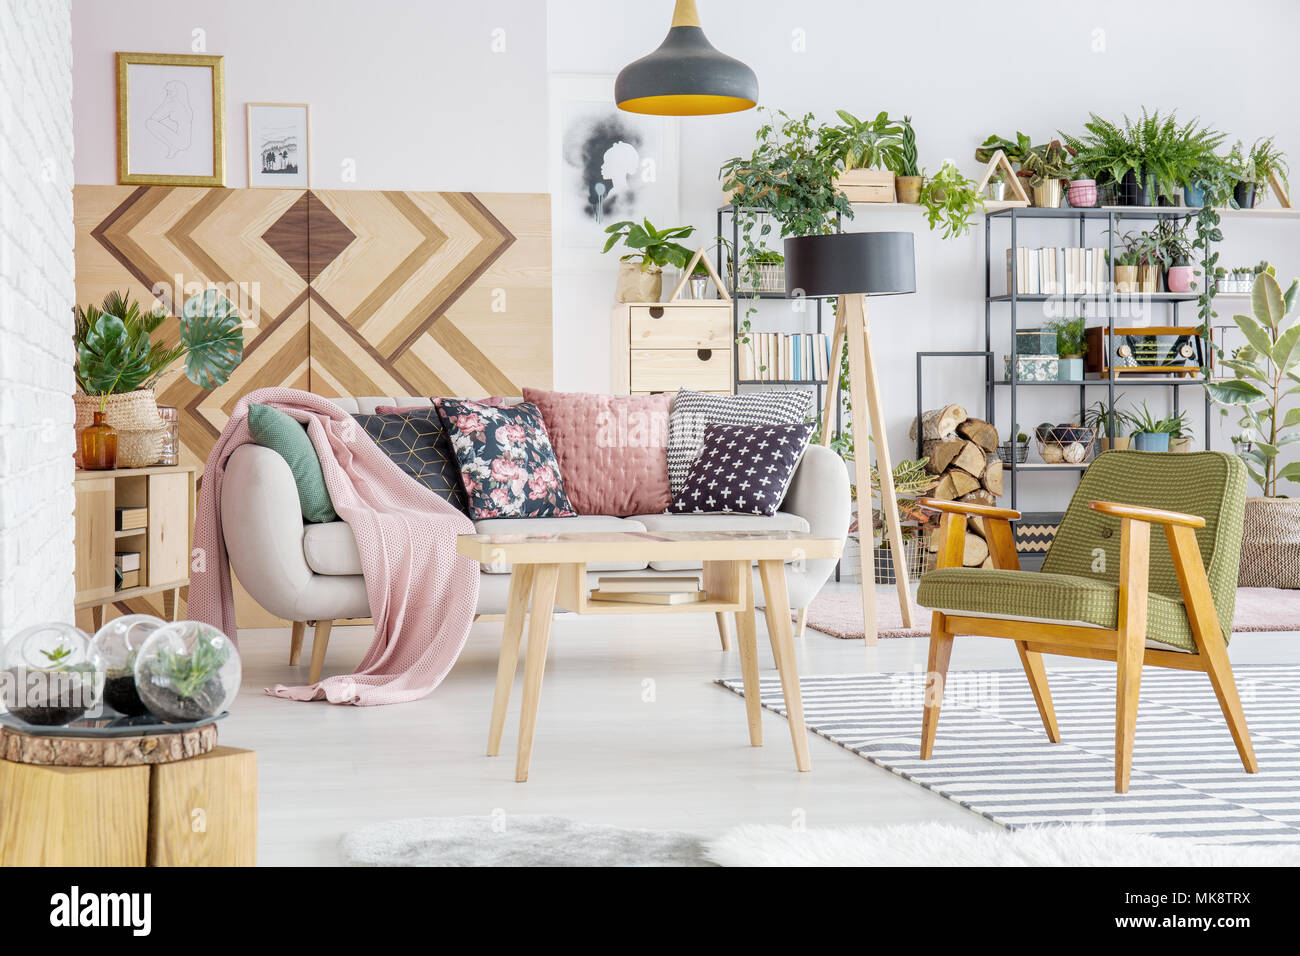 Botanical living room interior with comfy couch and pillows, armchair, wooden coffee table and wall - Stock Image